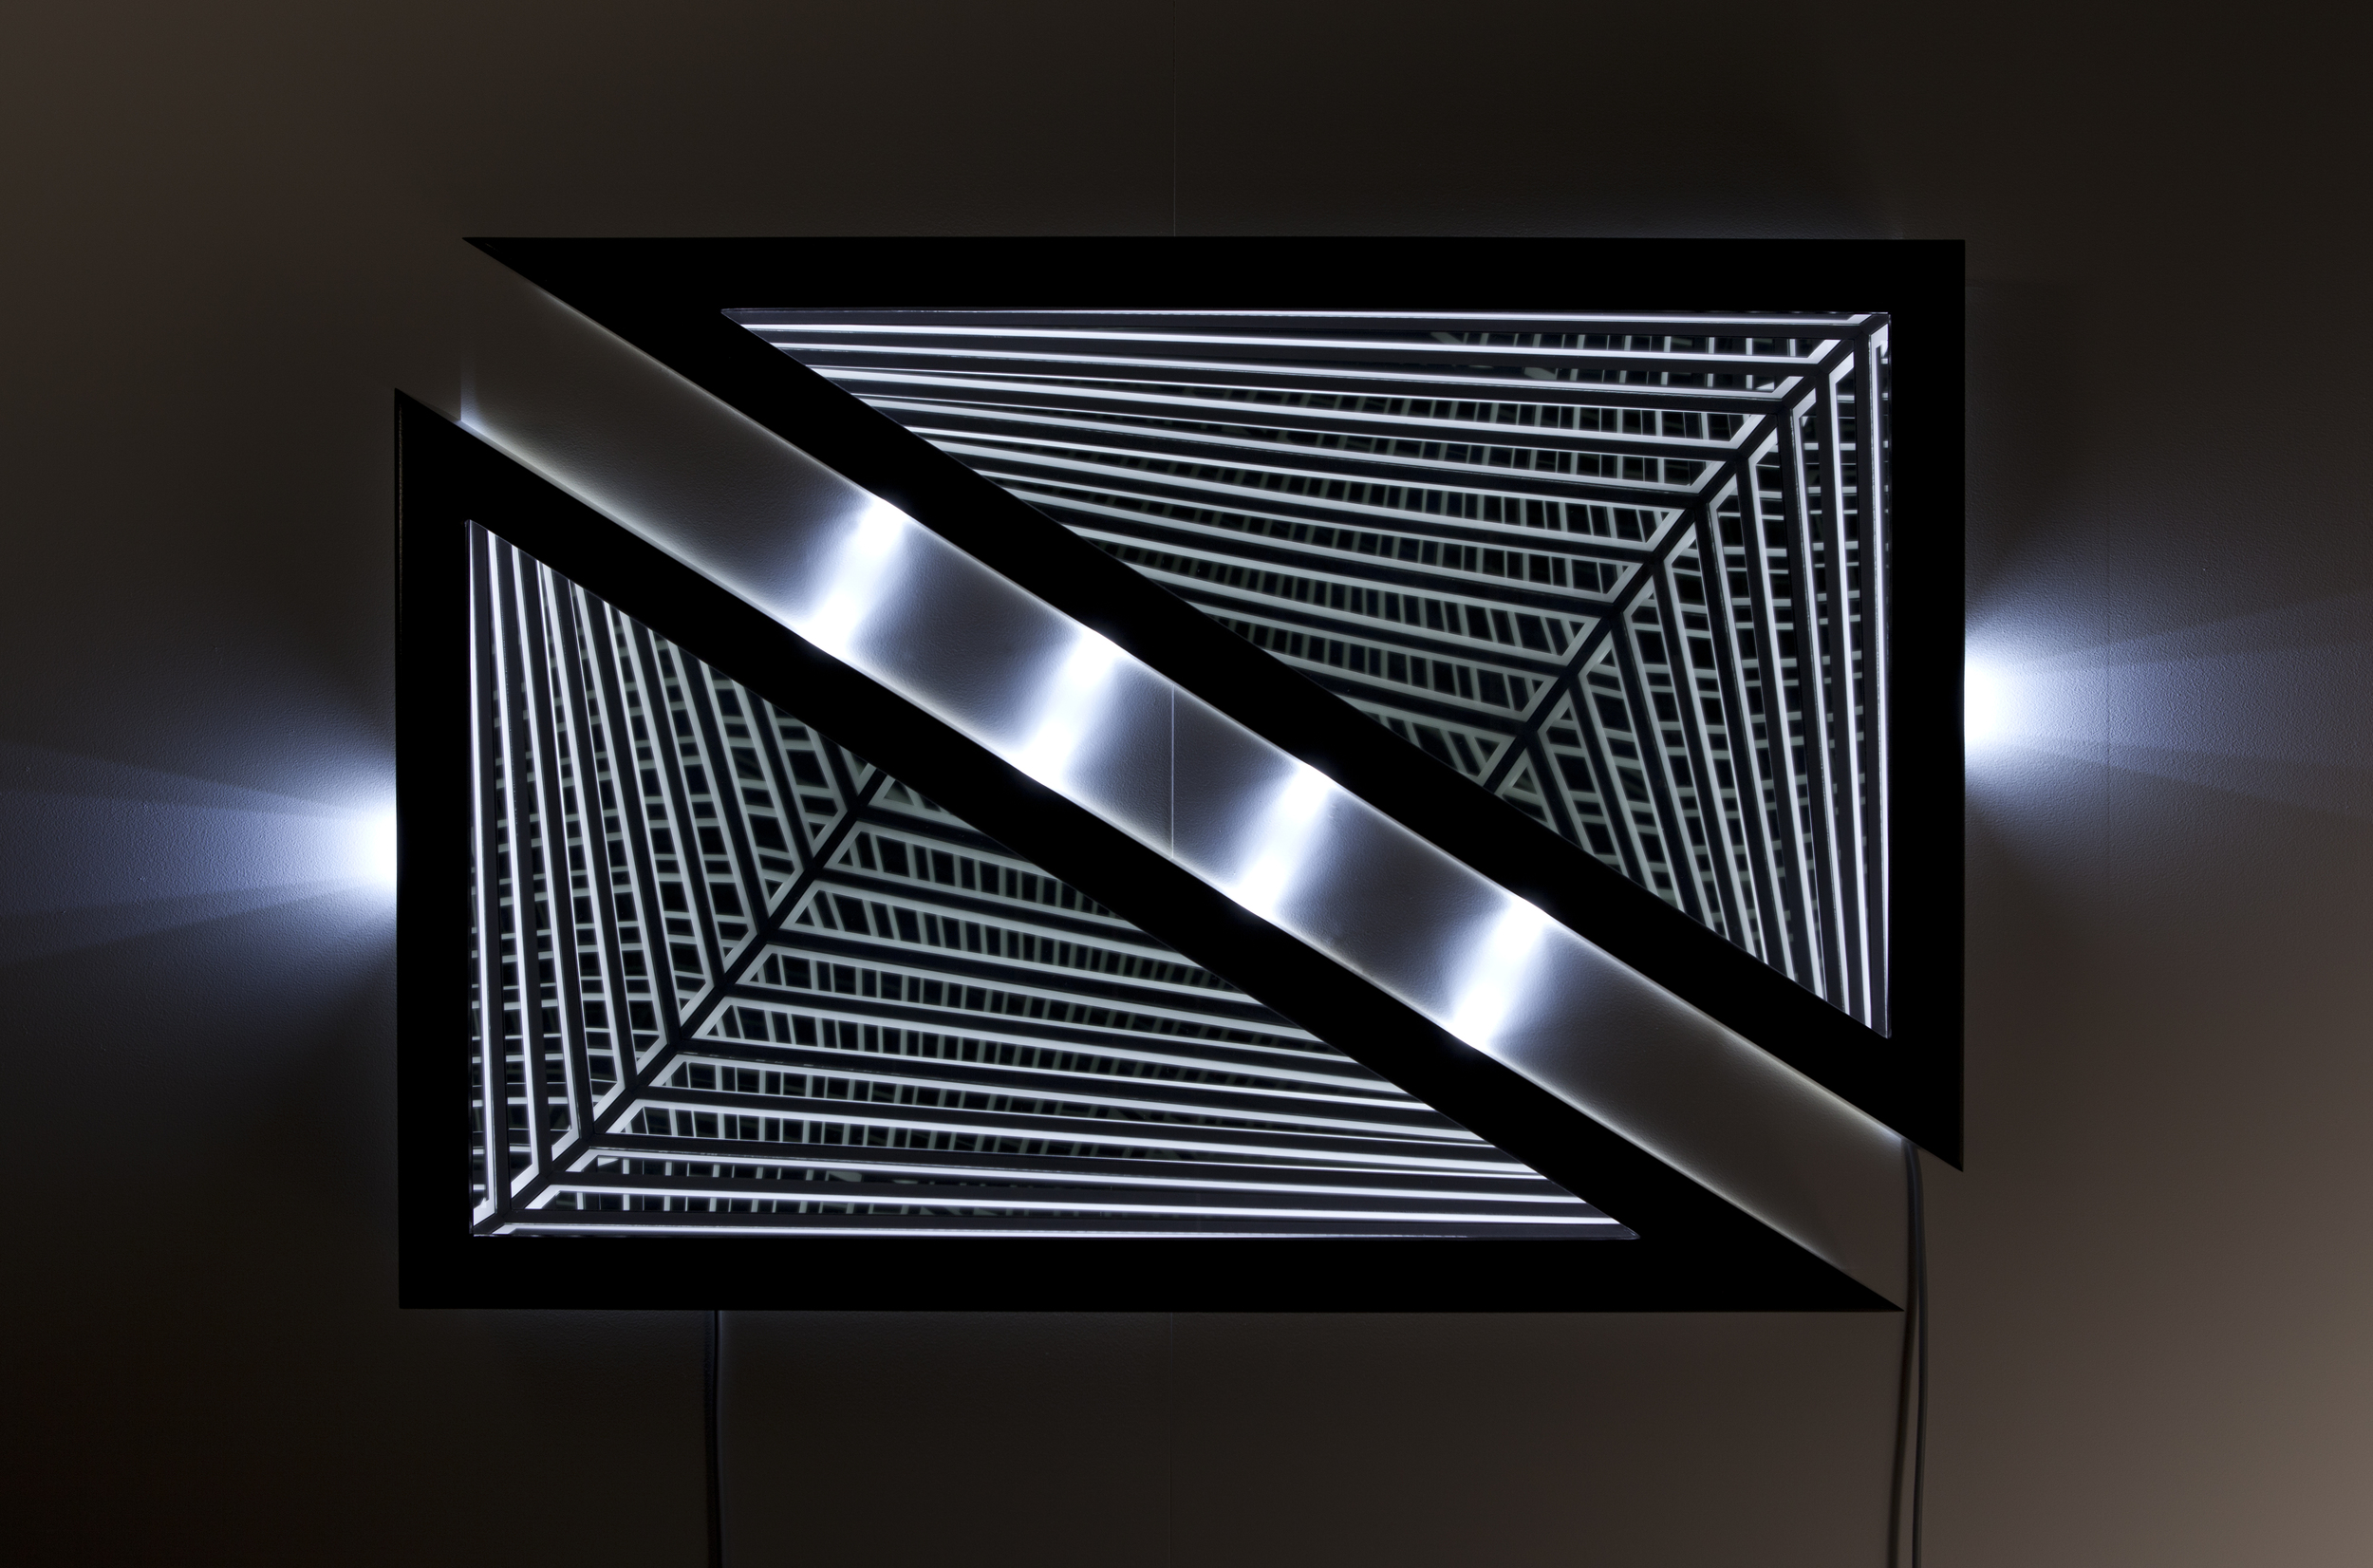 Resist , wood, reflective glass, mirror, MDF and LED lights, 81.5 x 119 x 13cm. Photo: Pippy Mount.